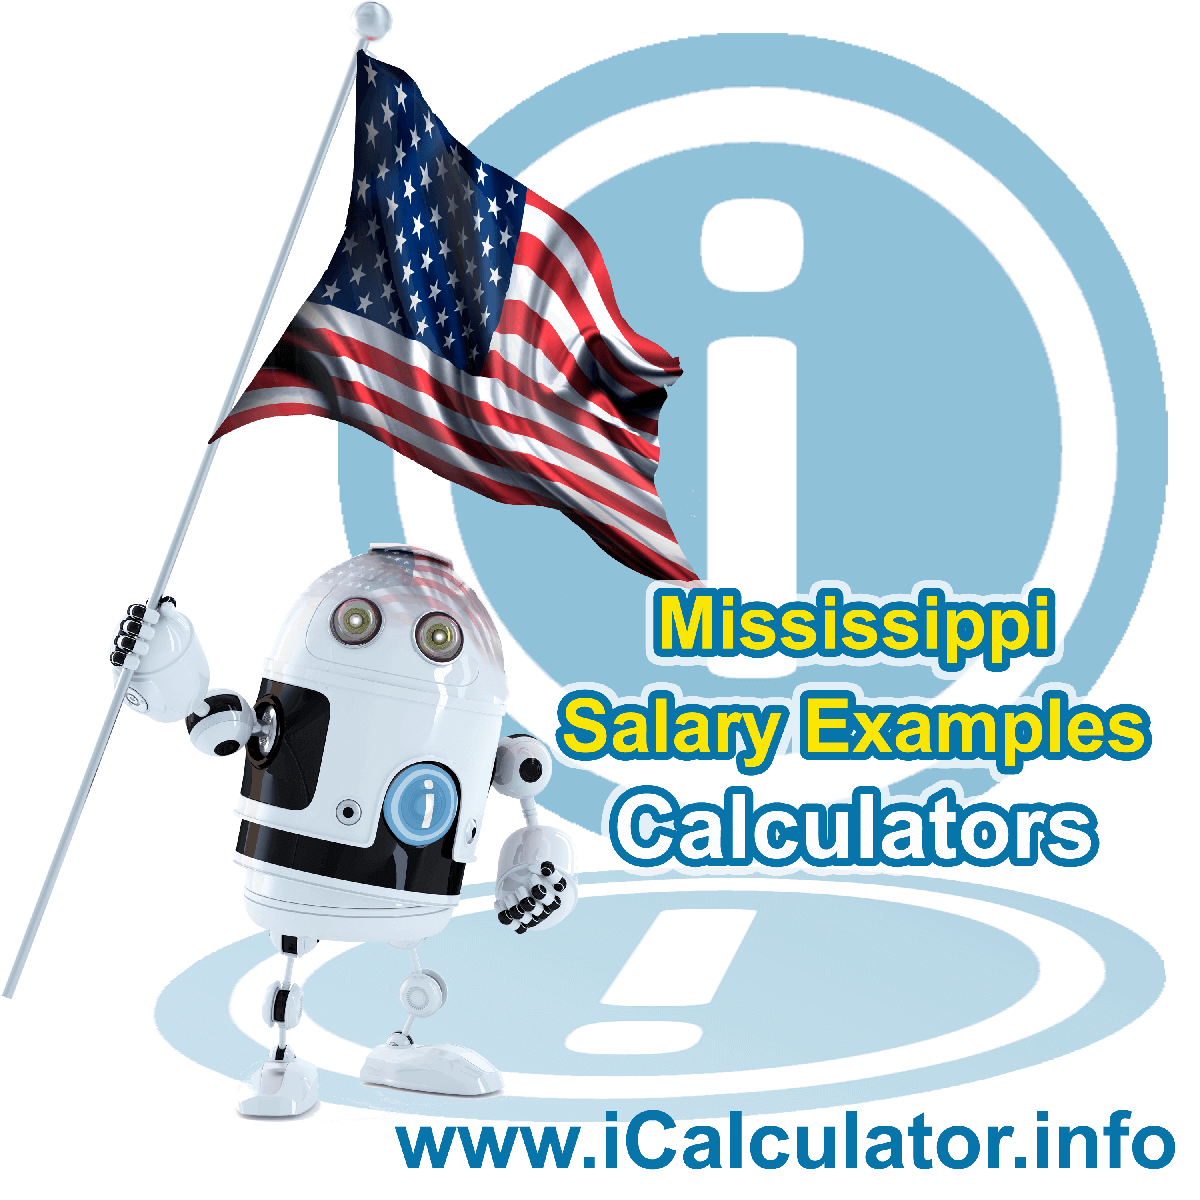 Mississippi Salary Example for $105,000.00 in 2020 | iCalculator | $105,000.00 salary example for employee and employer paying Mississippi State tincome taxes. Detailed salary after tax calculation including Mississippi State Tax, Federal State Tax, Medicare Deductions, Social Security, Capital Gains and other income tax and salary deductions complete with supporting Mississippi state tax tables